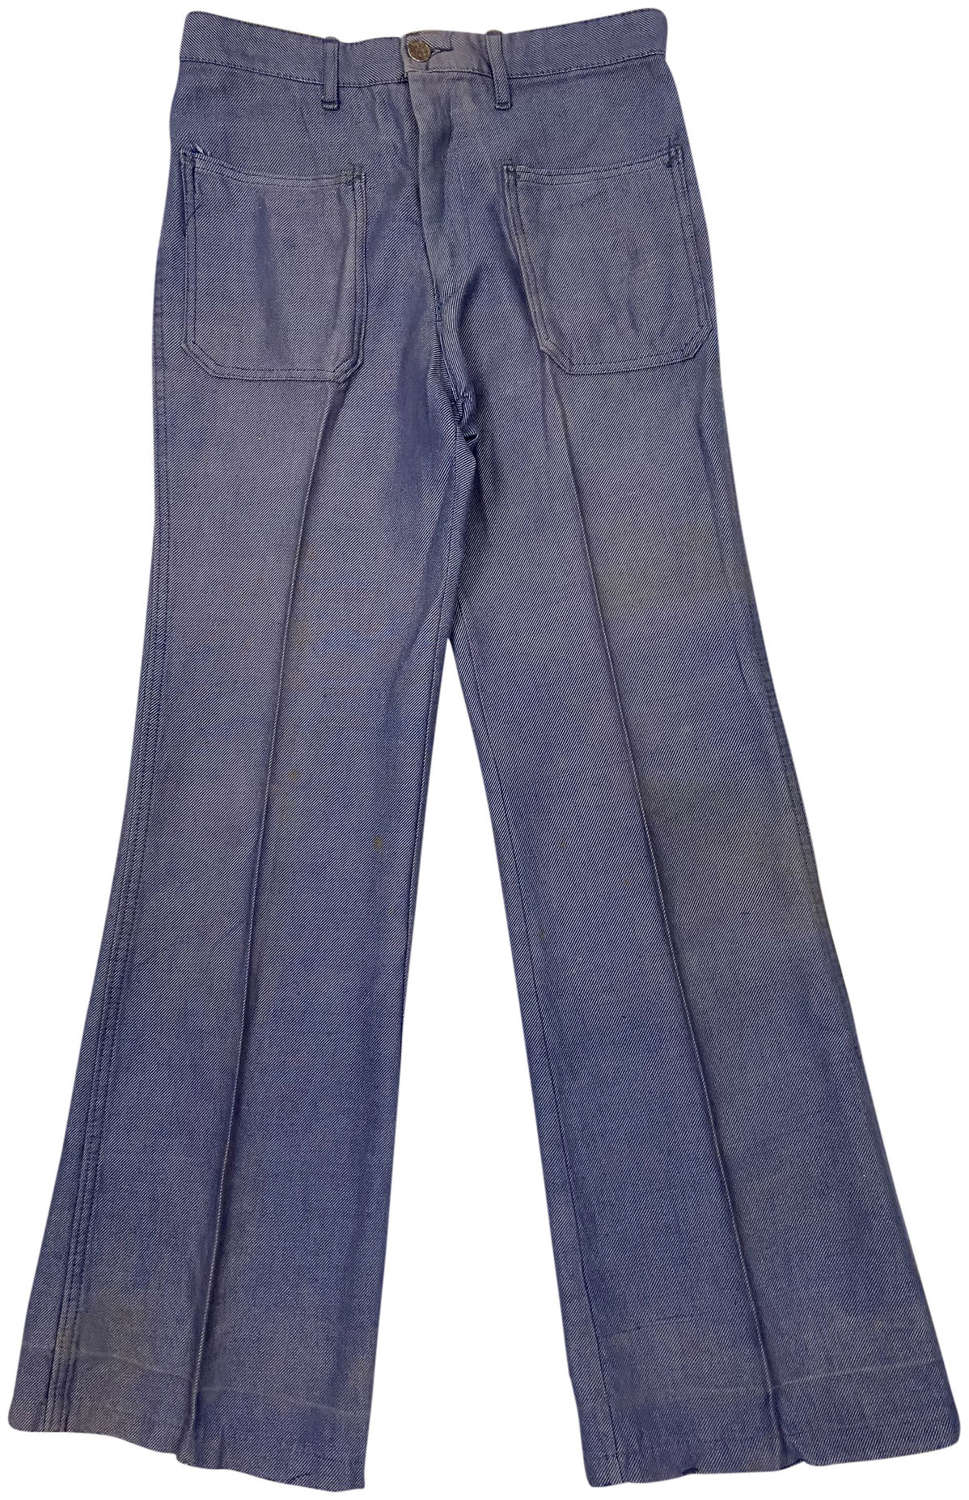 Original 1970s French Women's Flared Jeans